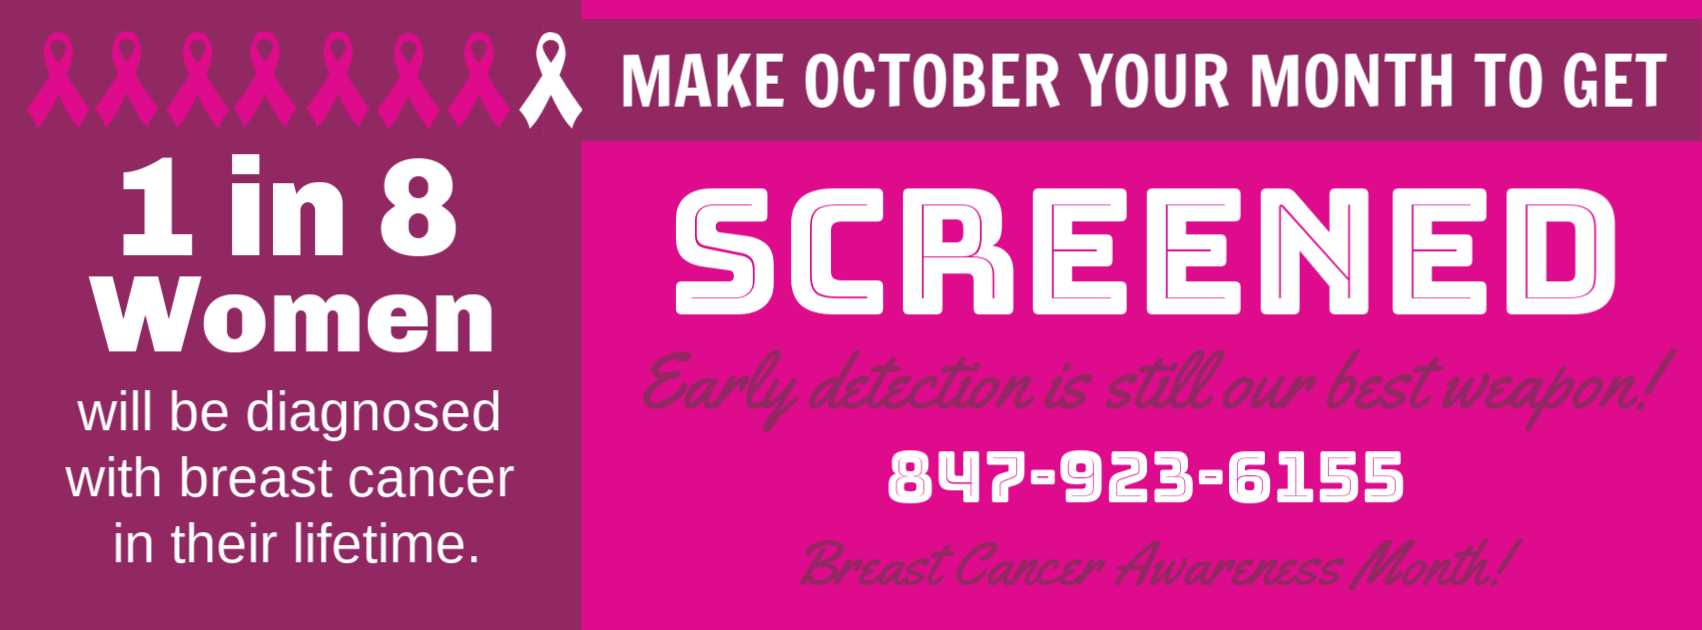 Dr. Judith Cothran supports Breast cancer awareness month